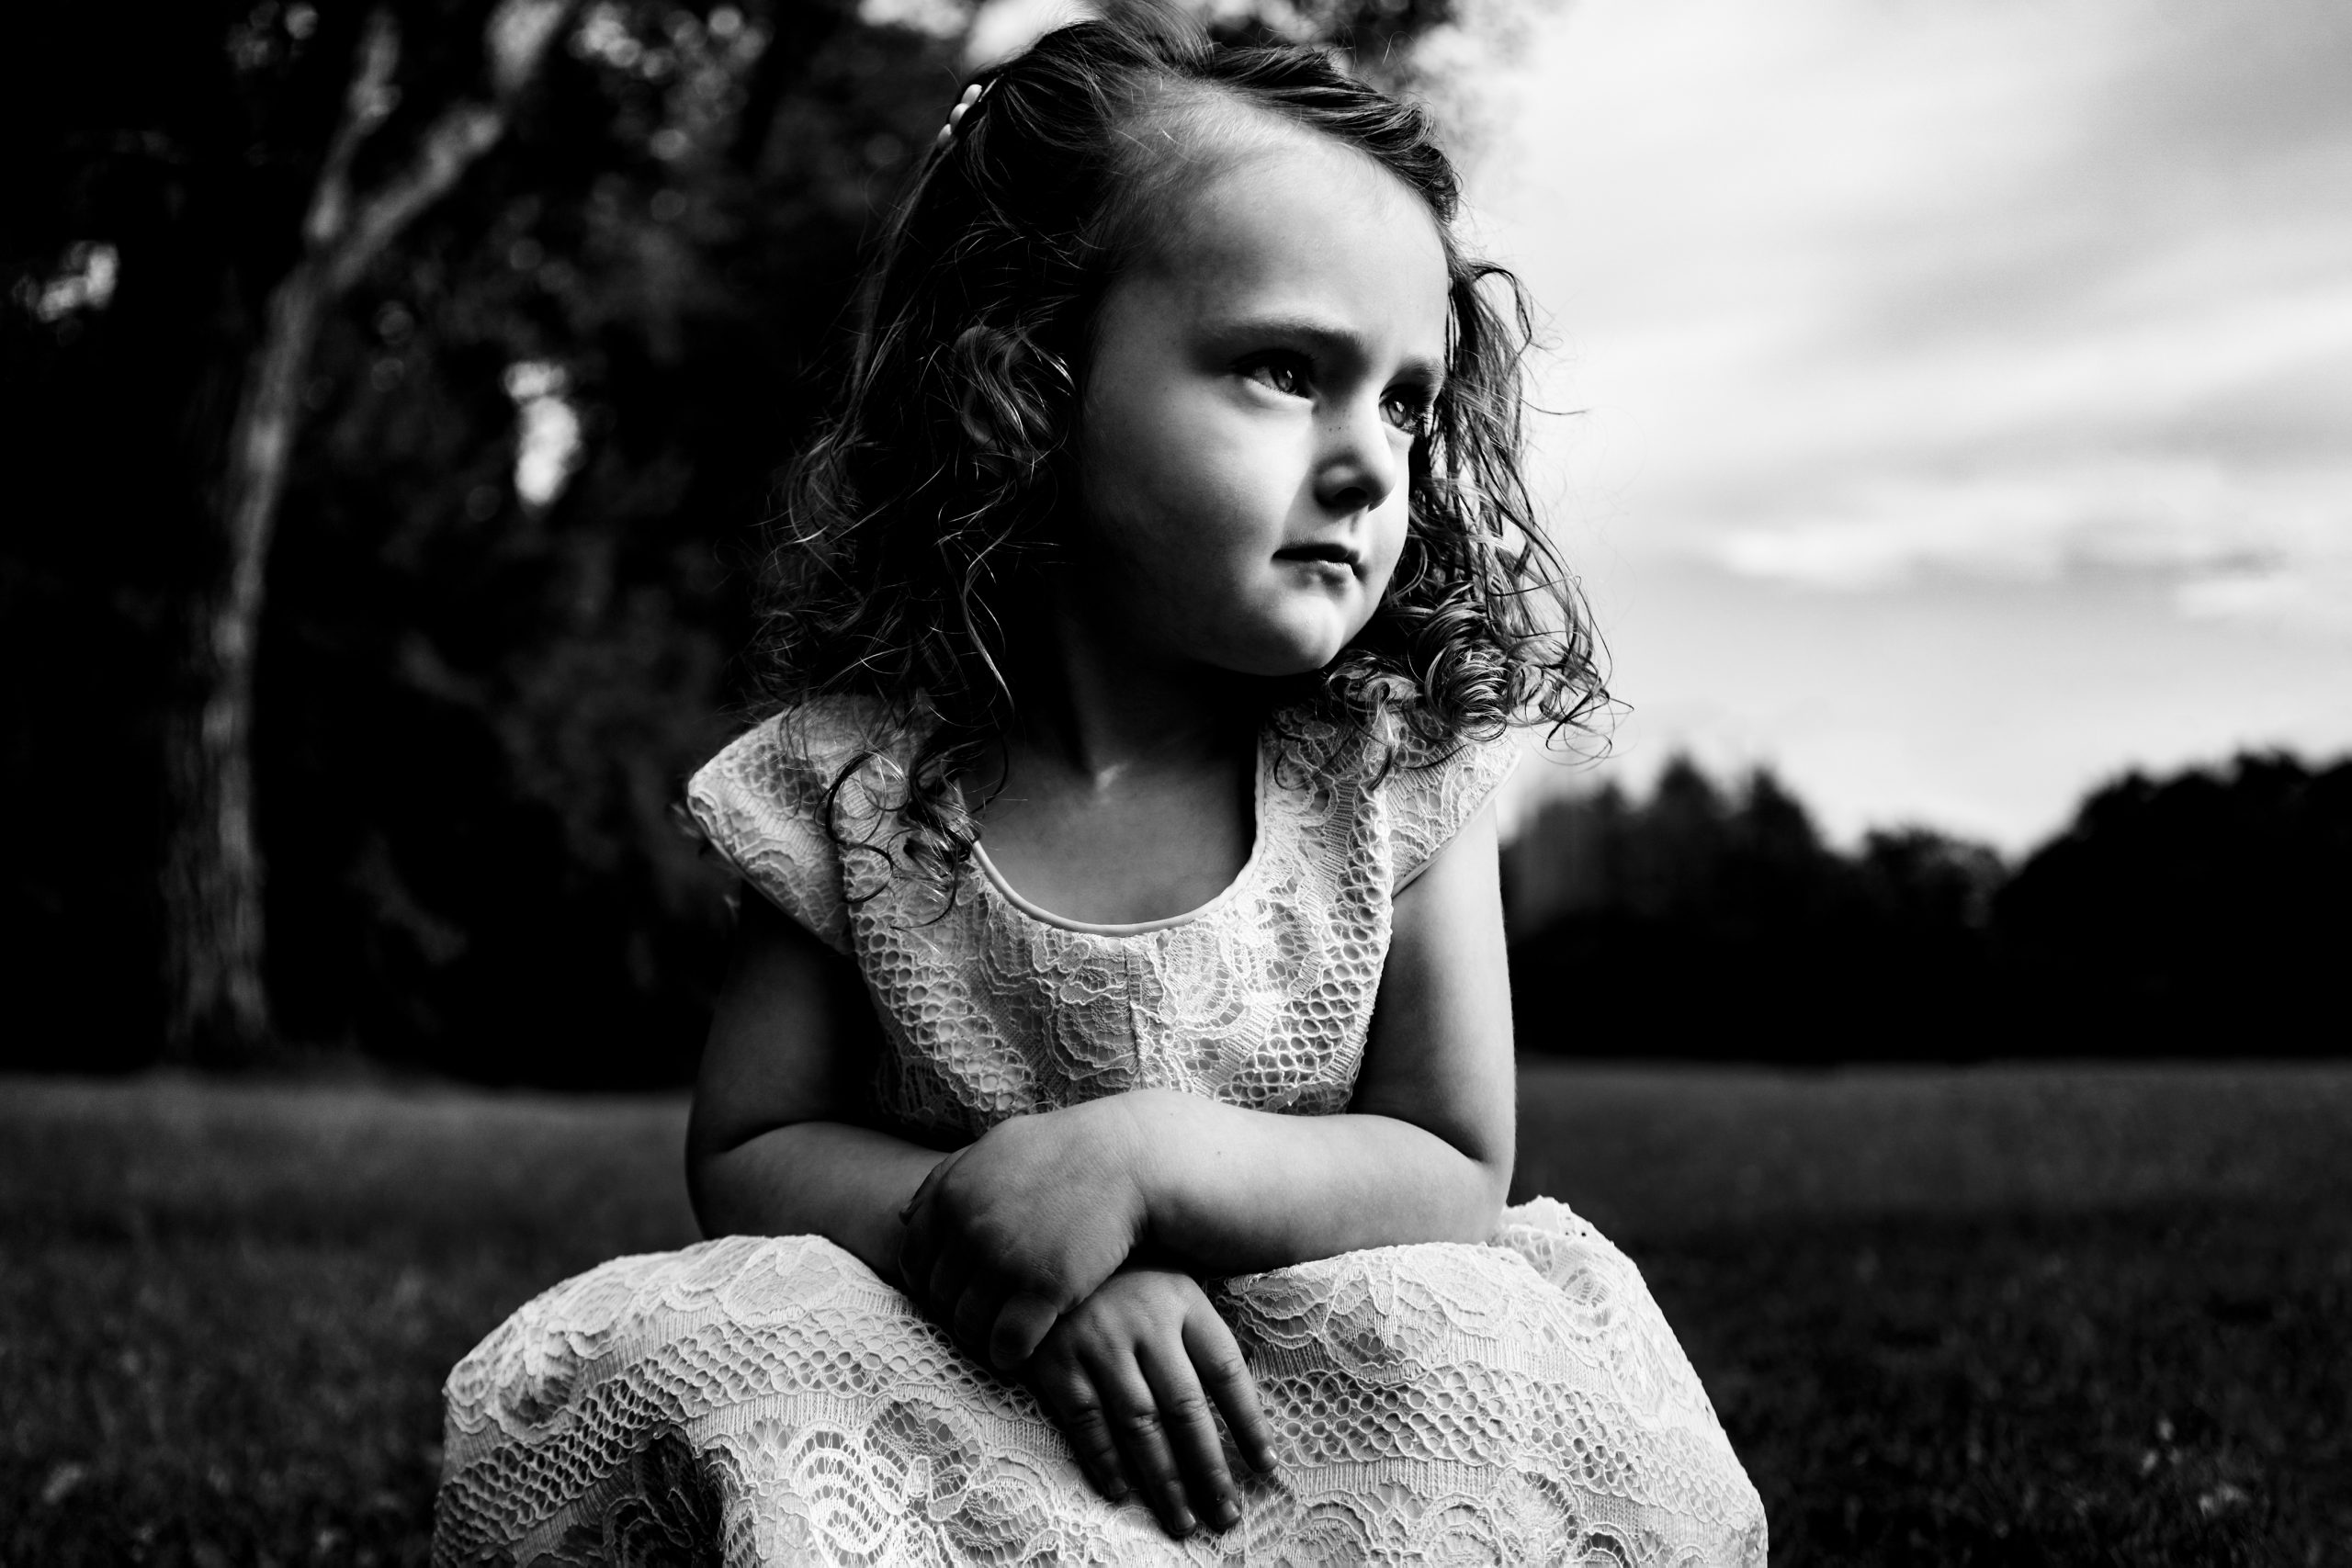 A little girl at a wedding ceremony